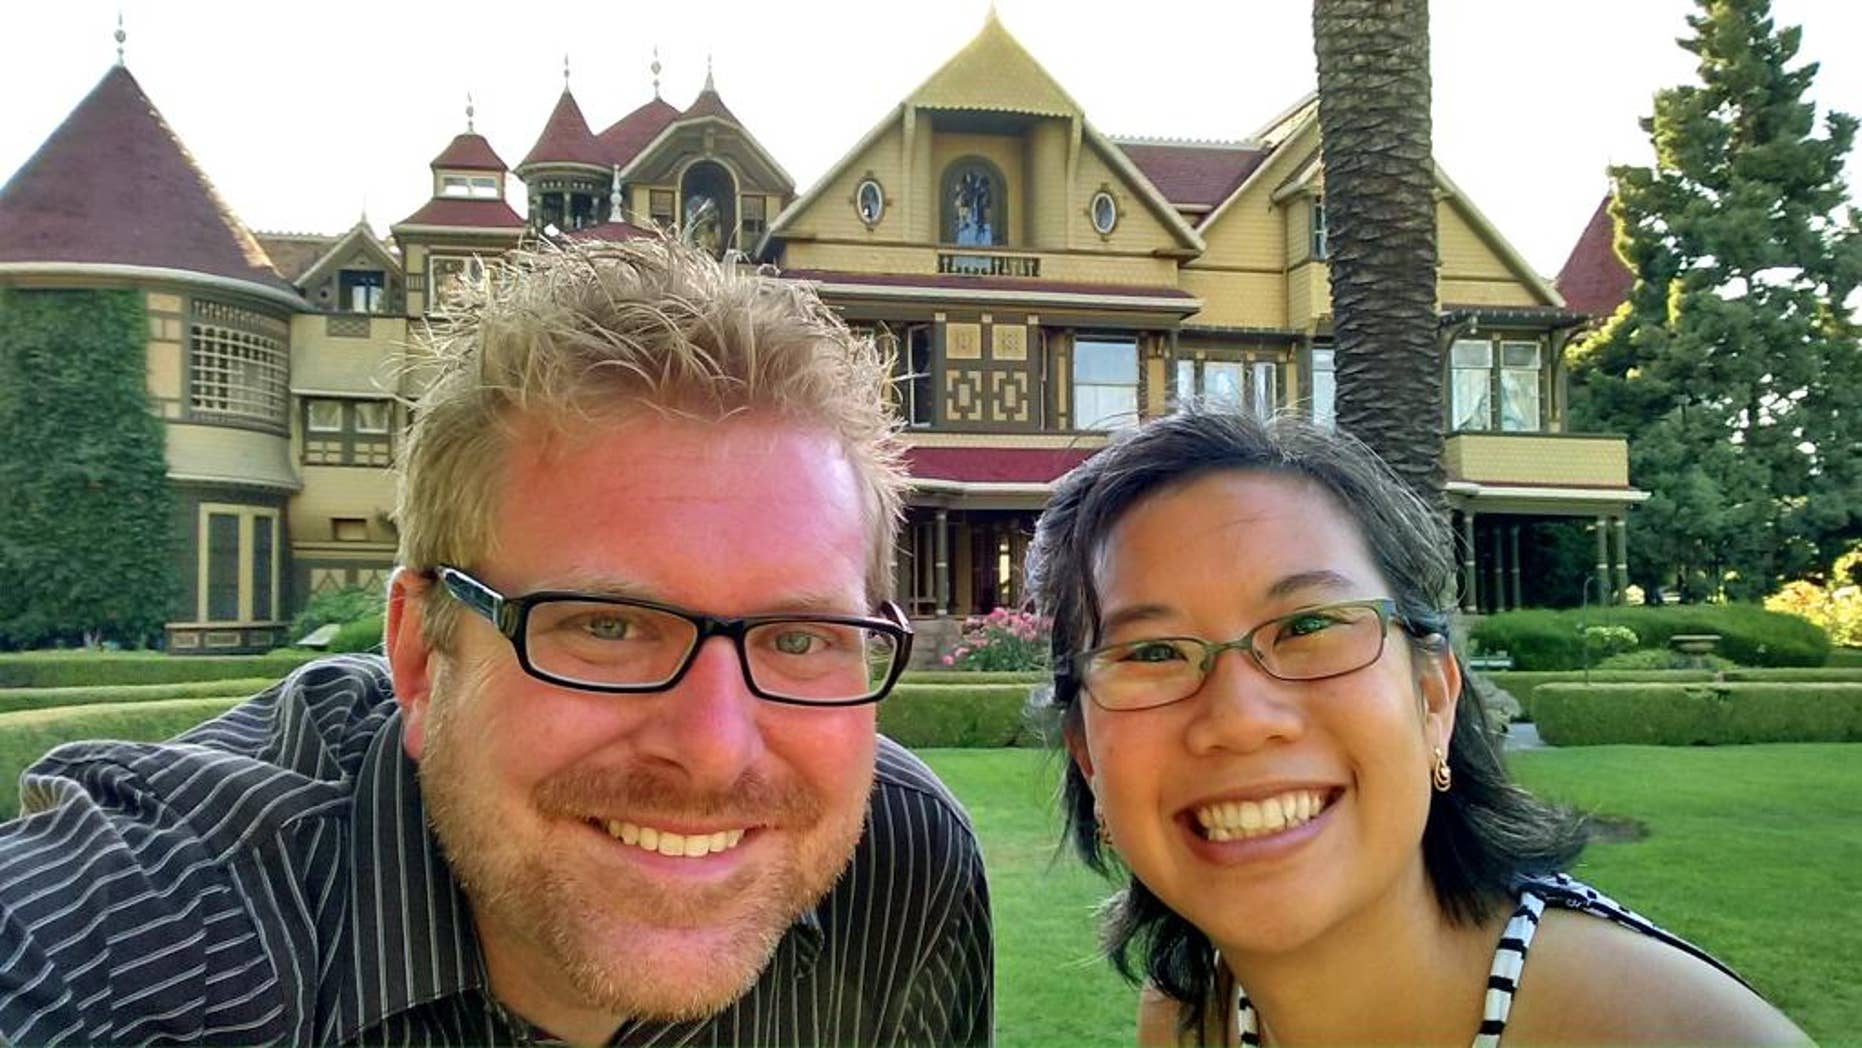 July 3, 2015:  Todd Kuhns shows Kuhns and his wife Bich Kuhns at Winchester Mystery House, a mansion and historic landmark open to tourists in San Jose, Calif. (Todd Kuhns via AP)